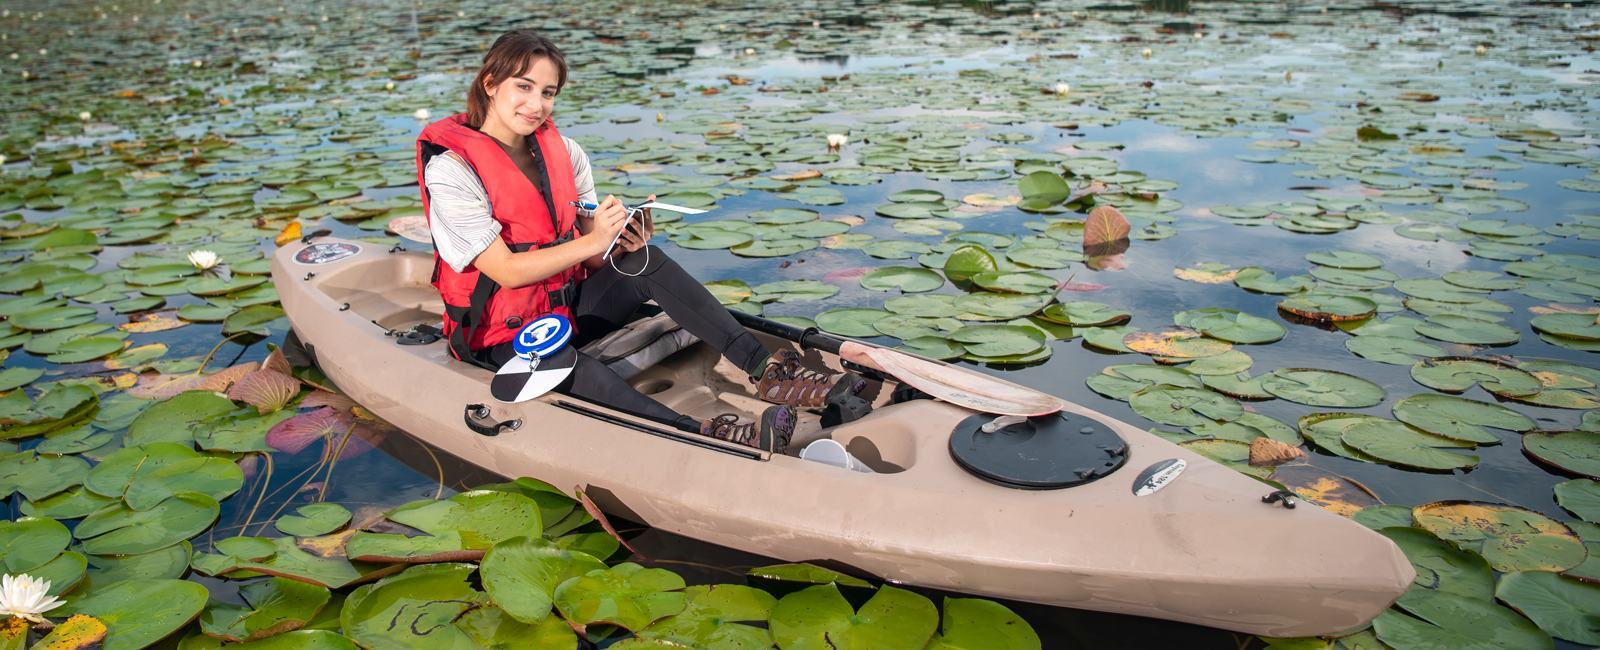 Nadia Vidal came to Valencia College in the wake of Hurricane Maria. Now she's exploring a future as an oceanographer.